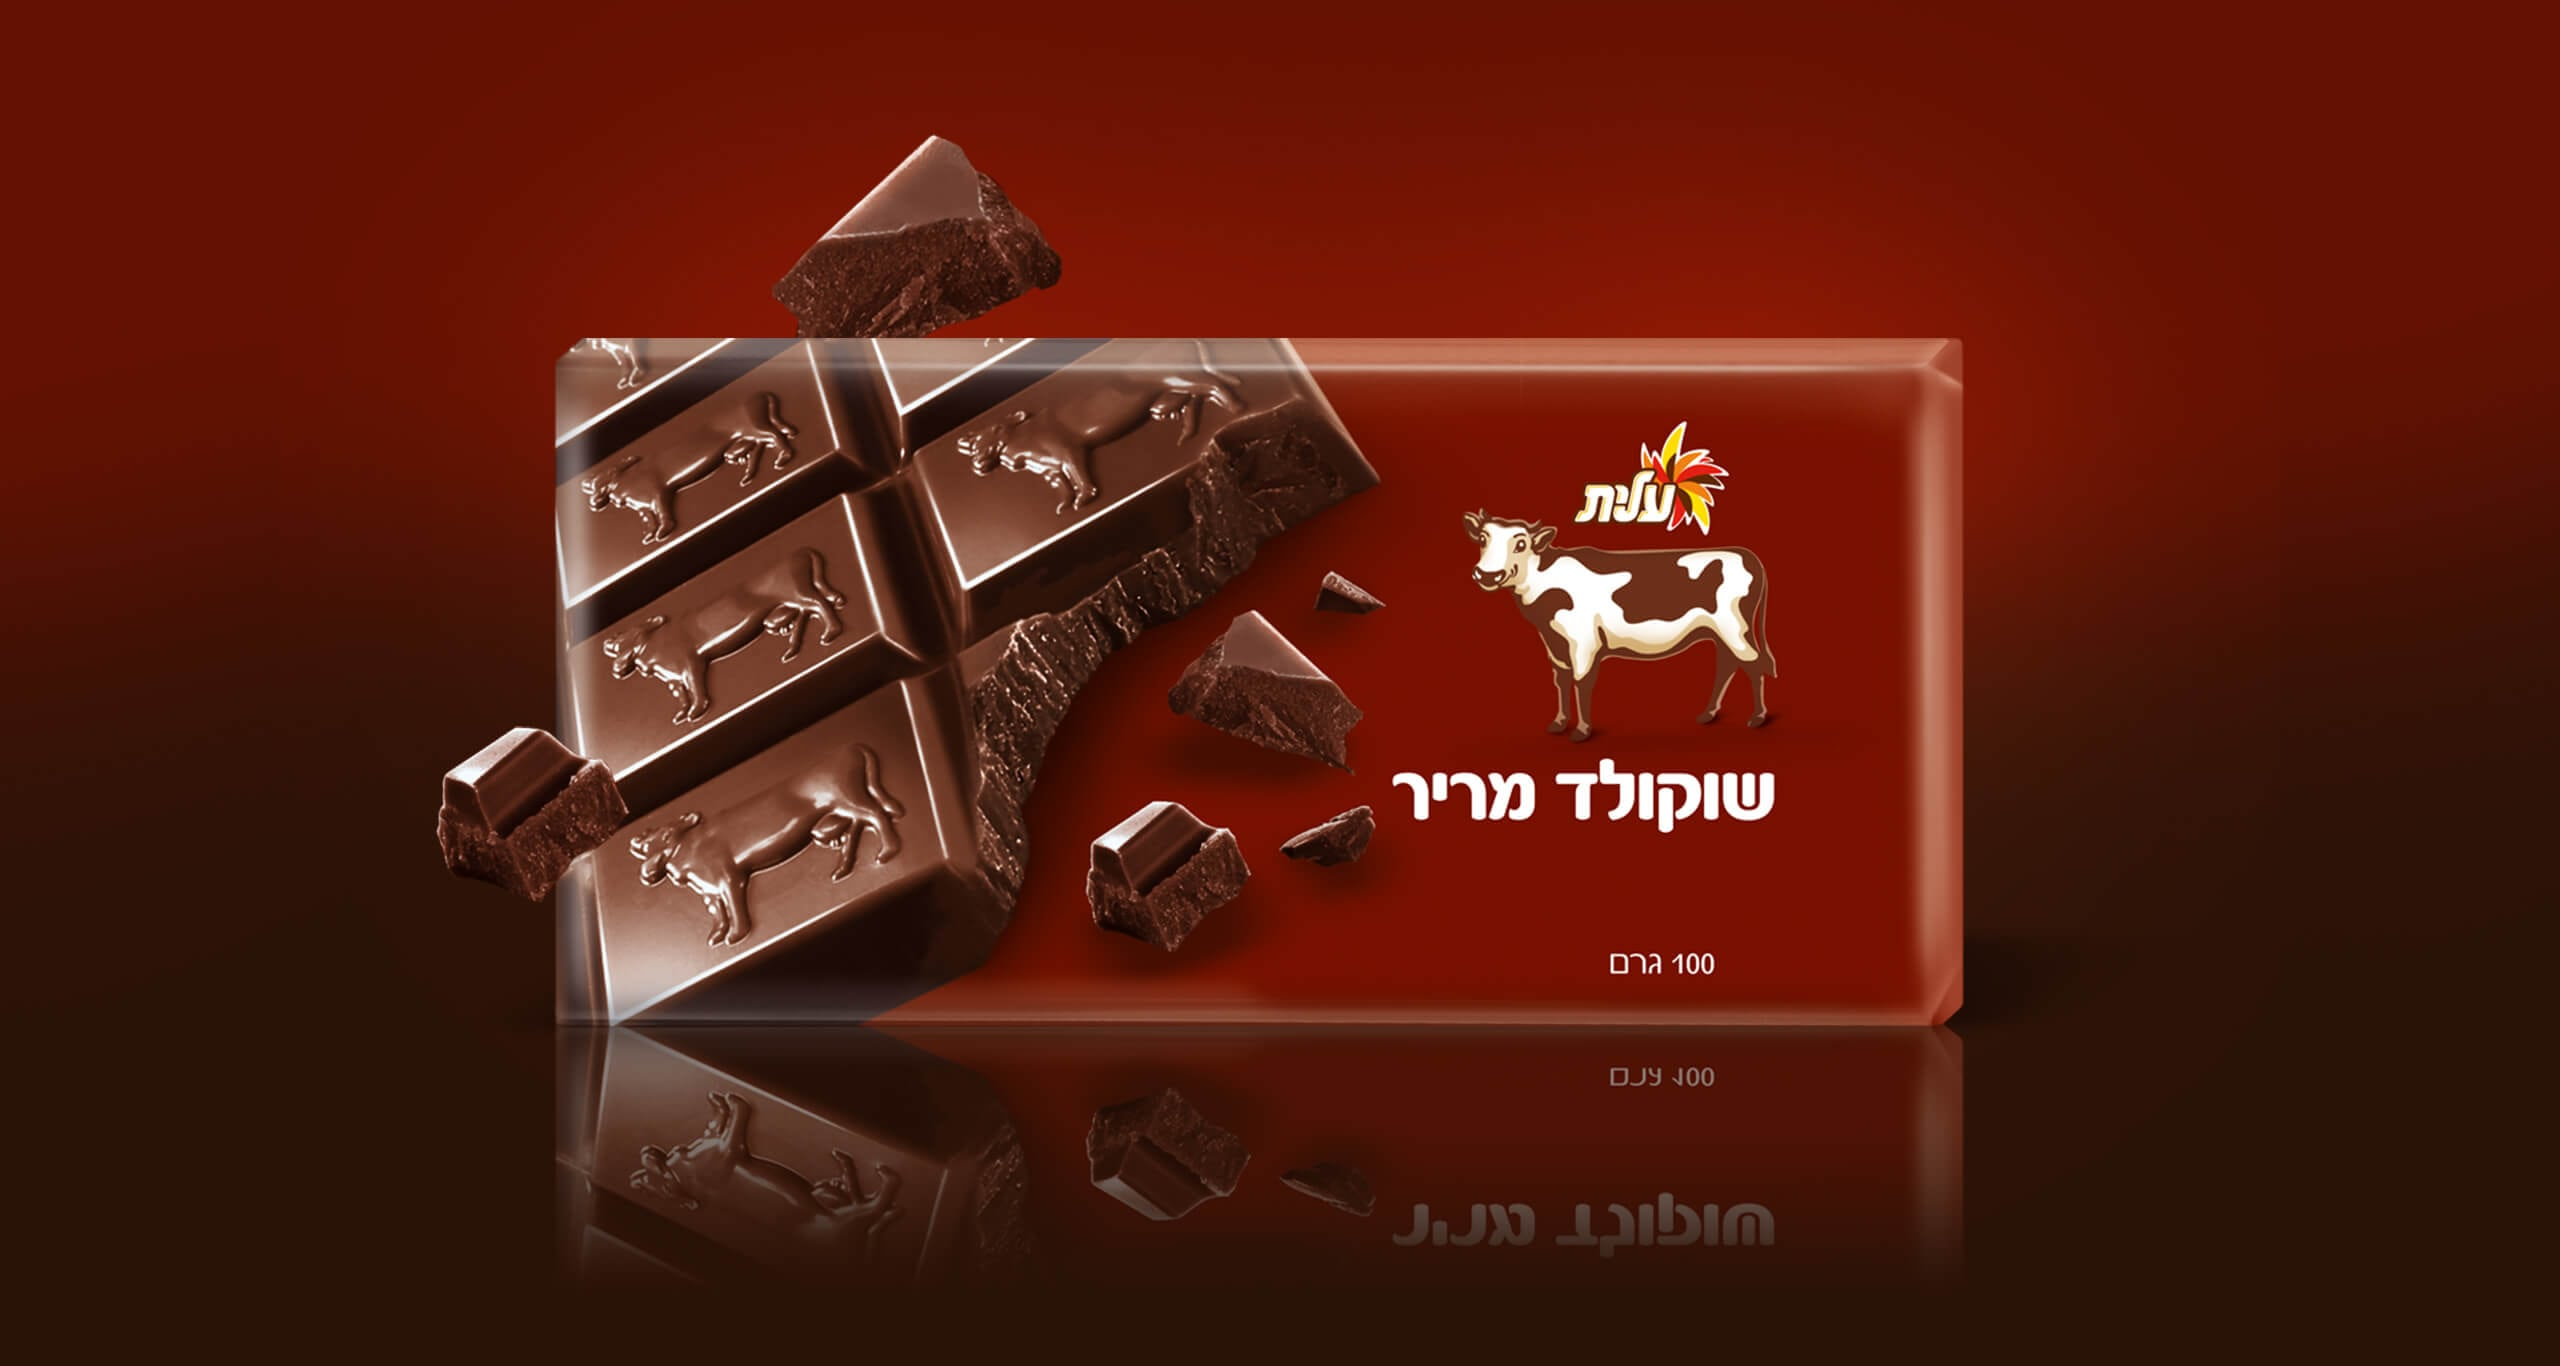 ELITE_CHOCOLATE_GalleryA02_2560x1366